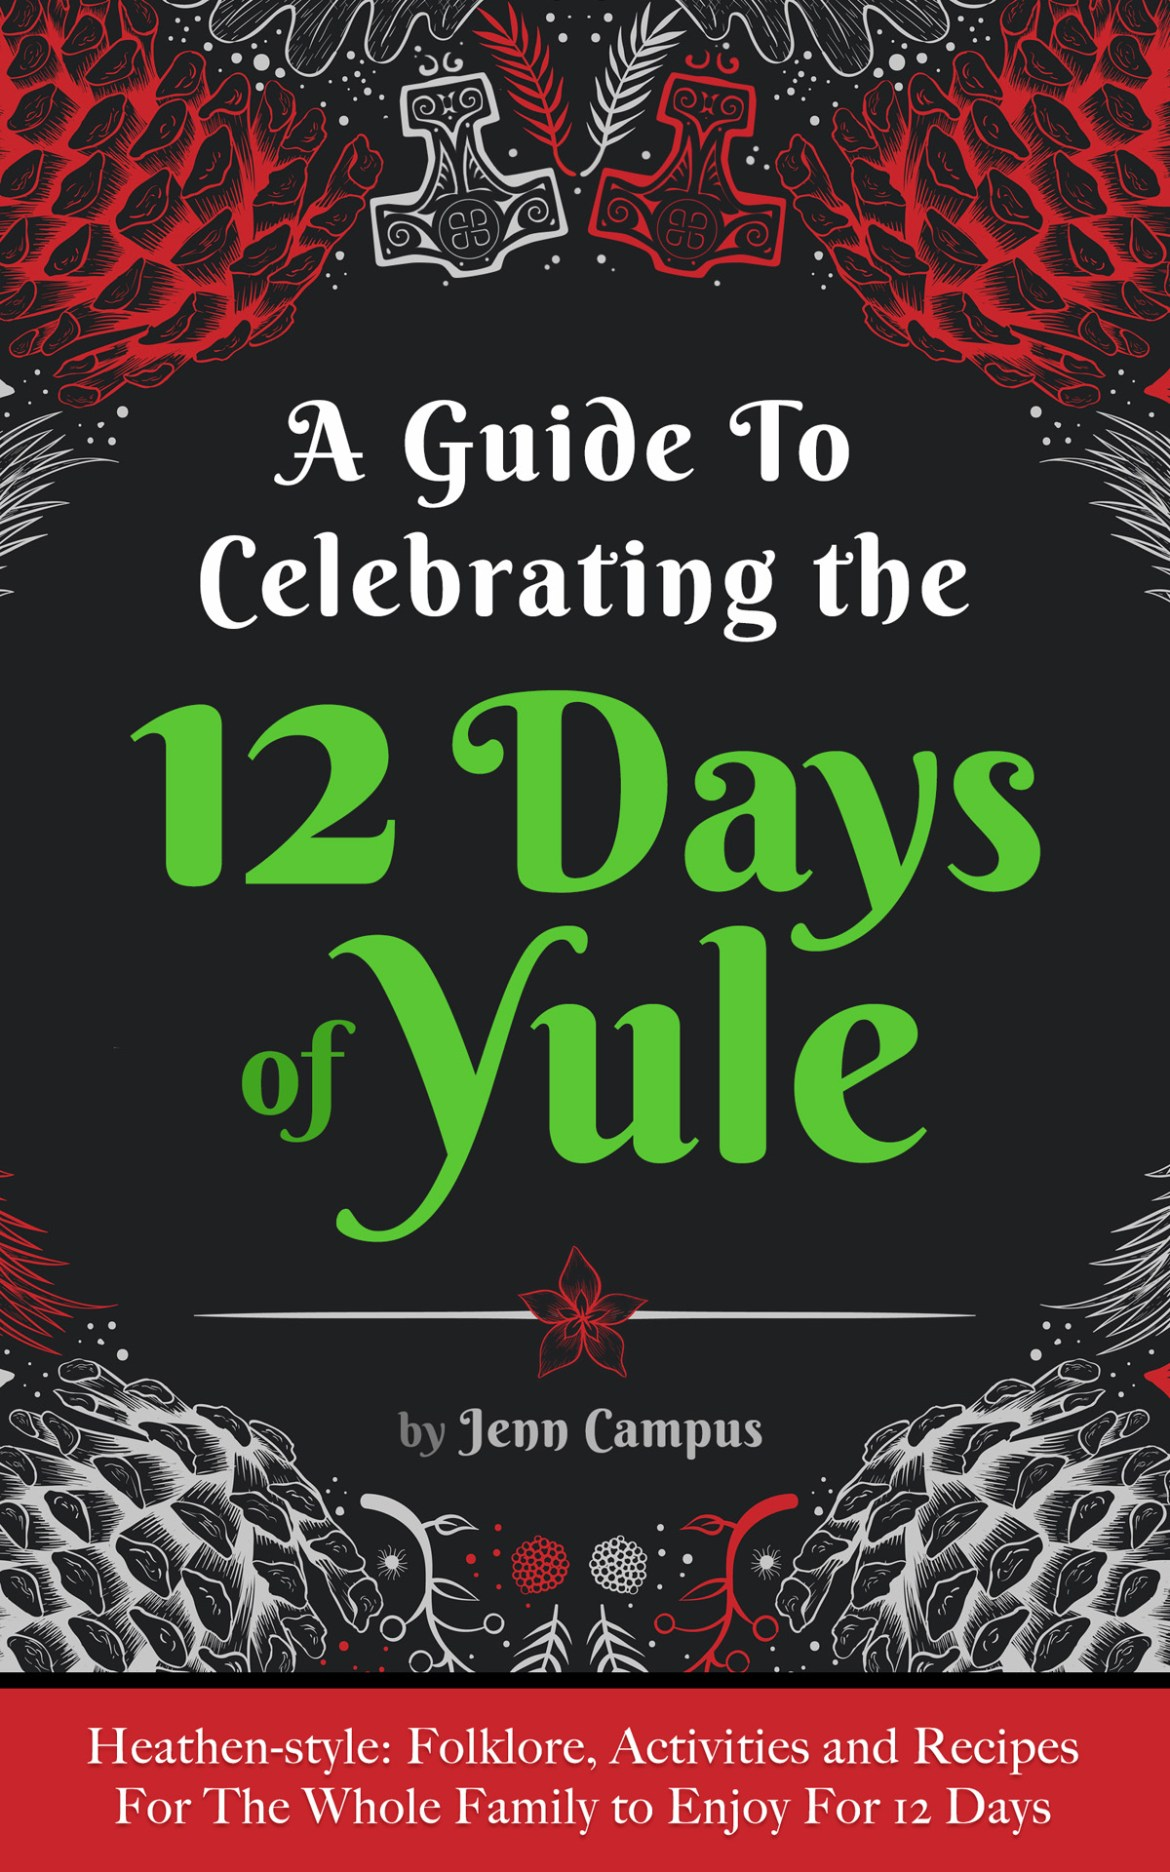 A Guide to Celebrating the 12 Days of Yule (Cover)